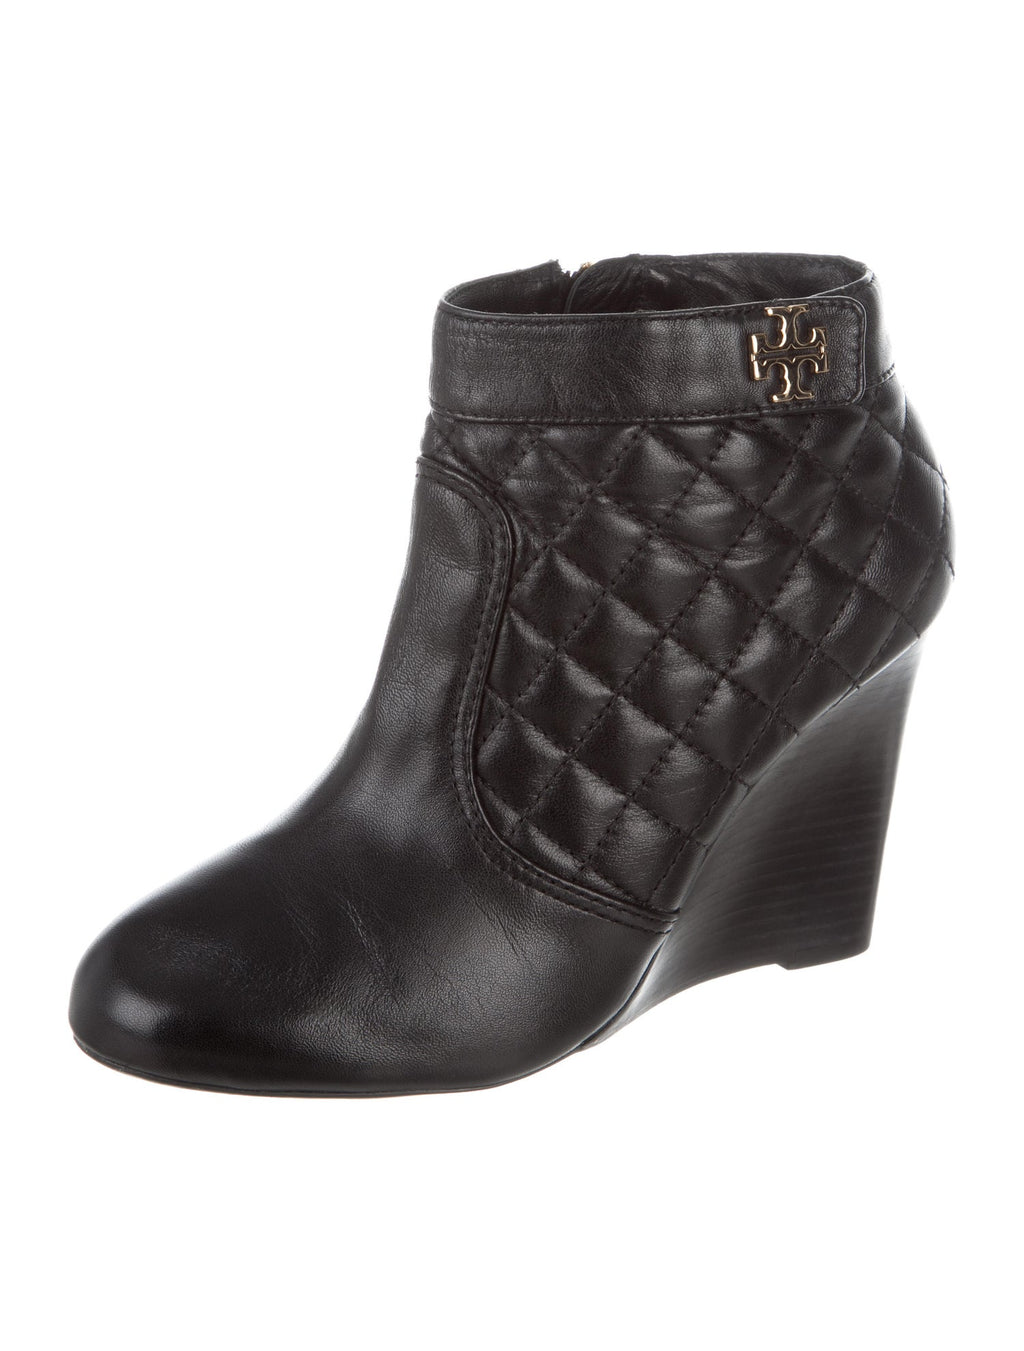 Tory Burch Quilted Wedge Booties